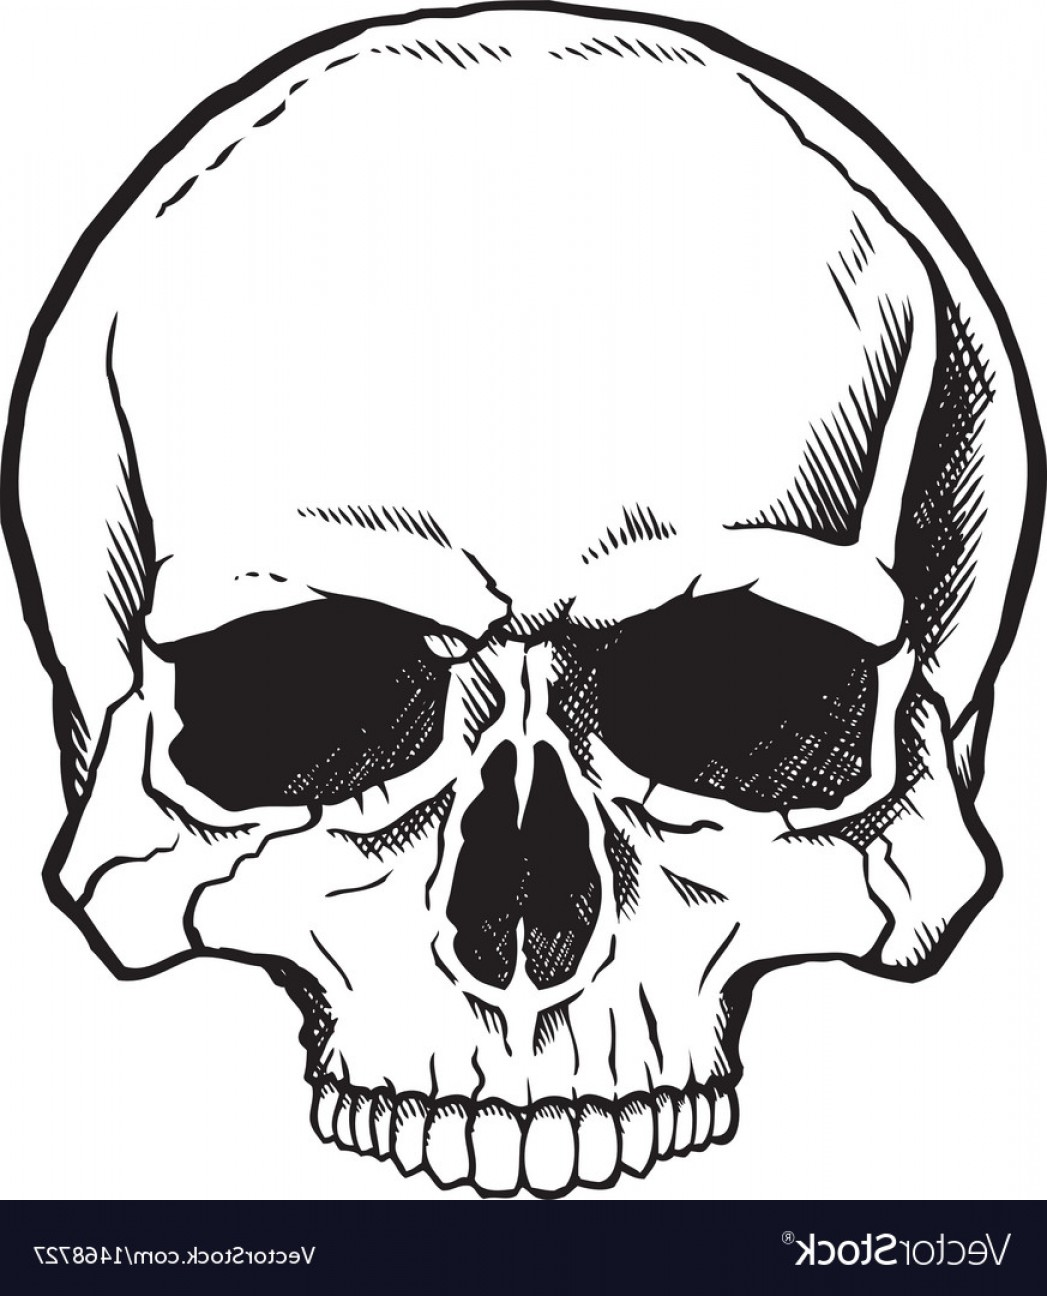 Cool Skull Vector: Black And White Human Skull Vector